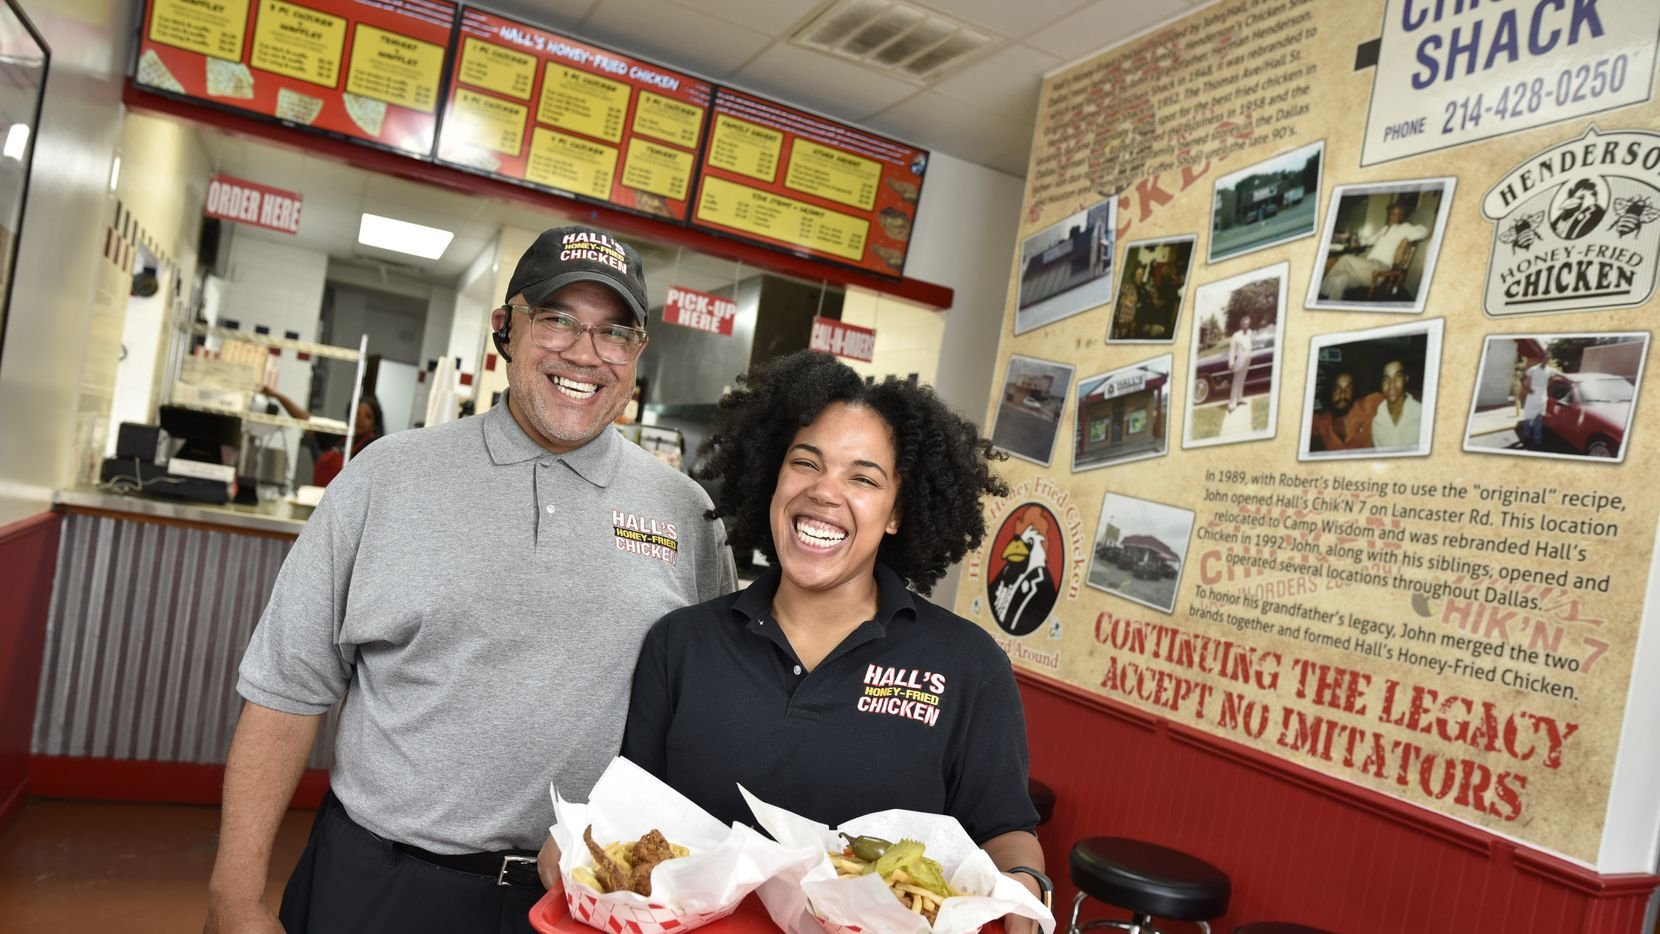 Mackenzie Hall, owner of Hall's Honey Fried Chicken at the Medical District, opened her own restaurant after following in the footsteps of her dad, on left, who founded the company.